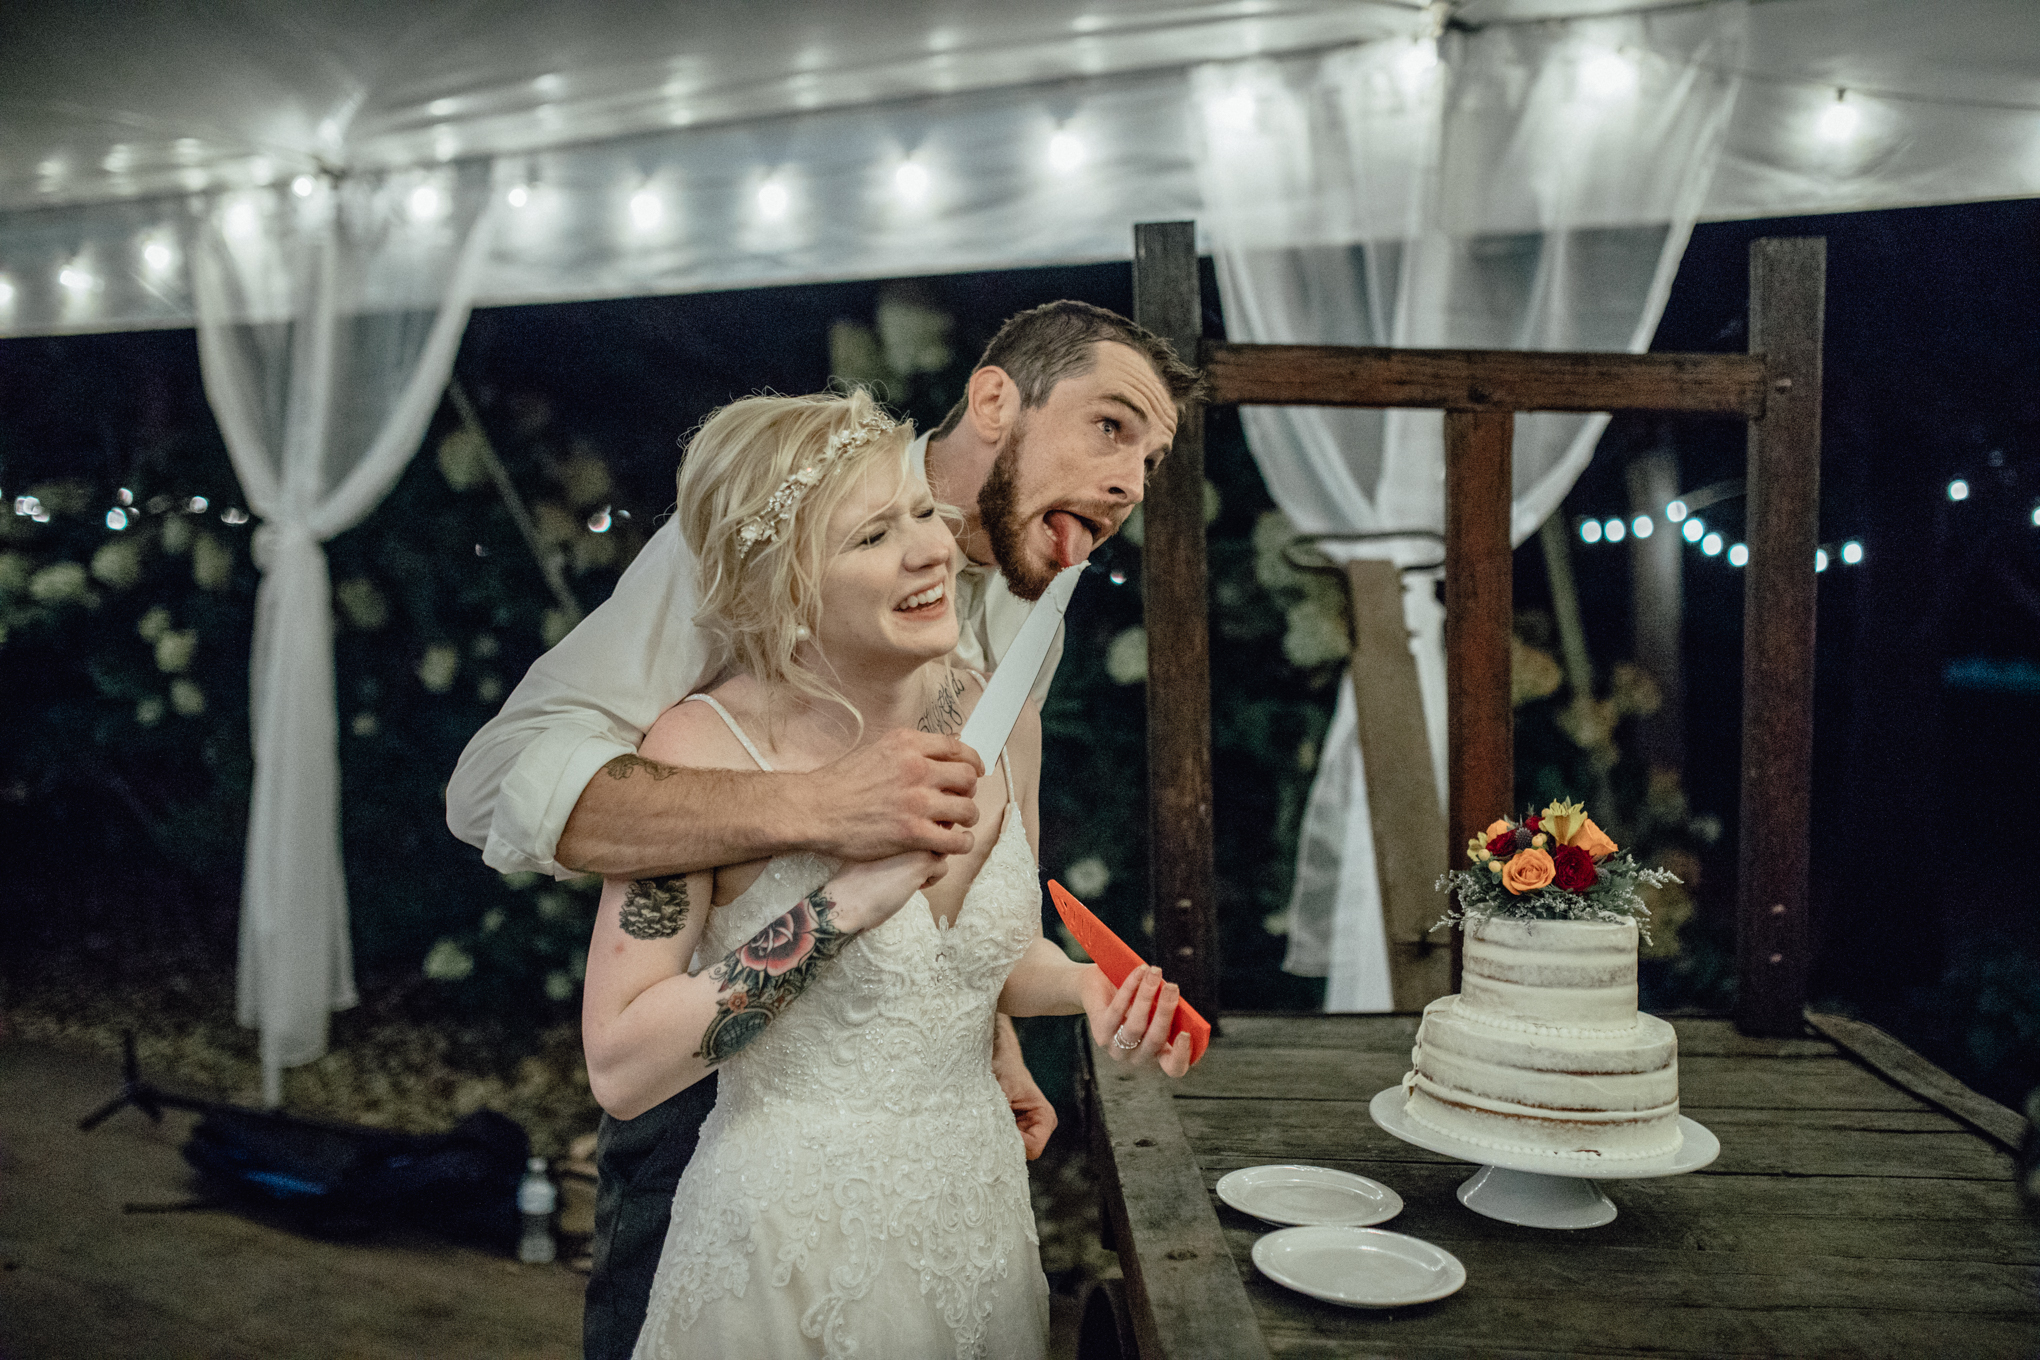 bride and groom cutting cake licking knife at oak hill weddings reception